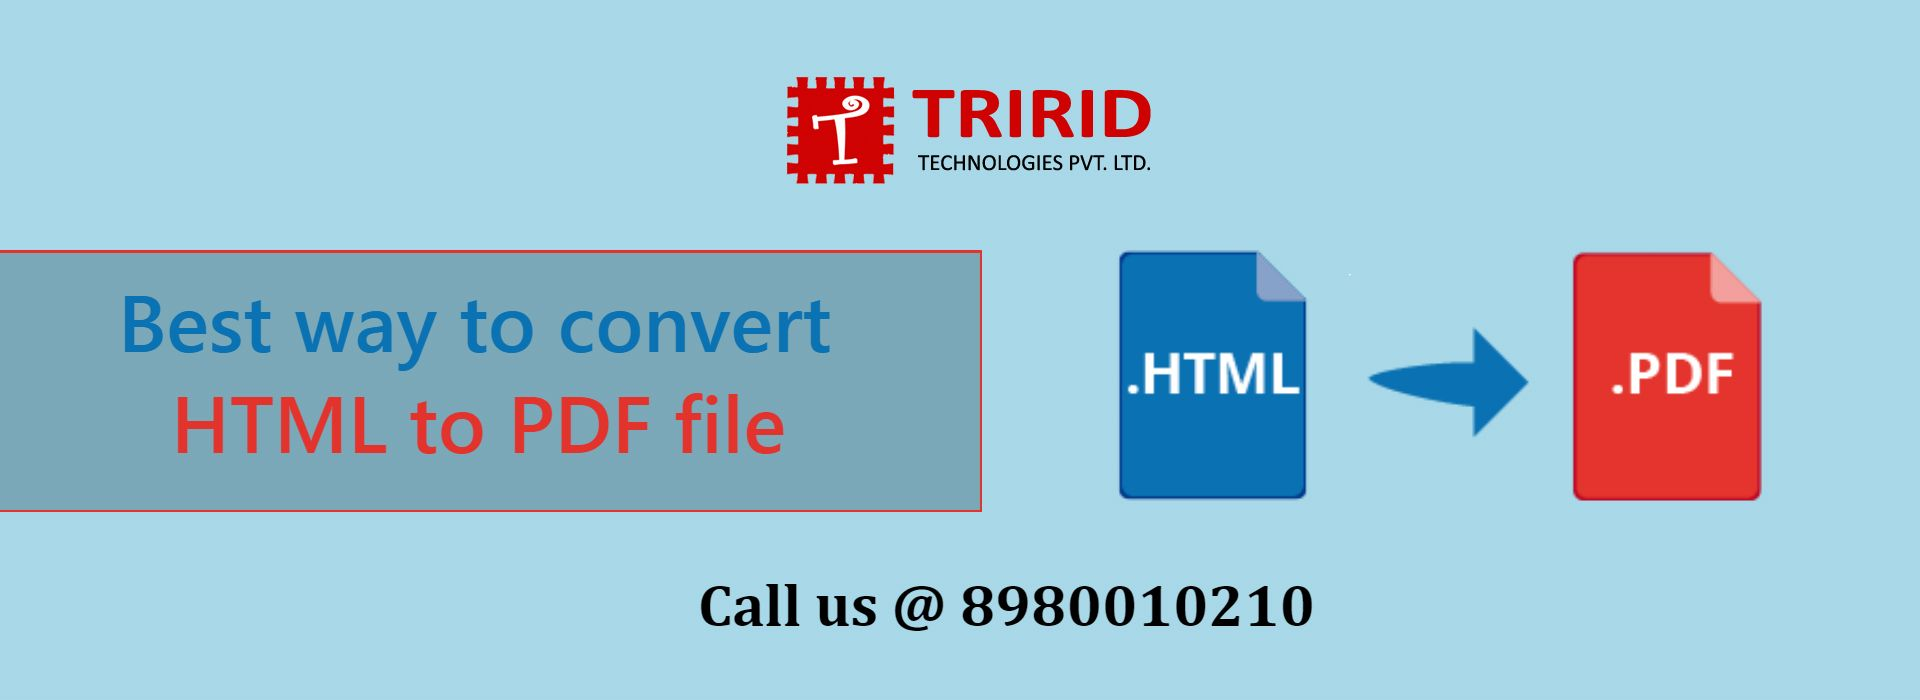 What is the best way to convert HTML to PDF file? tririd